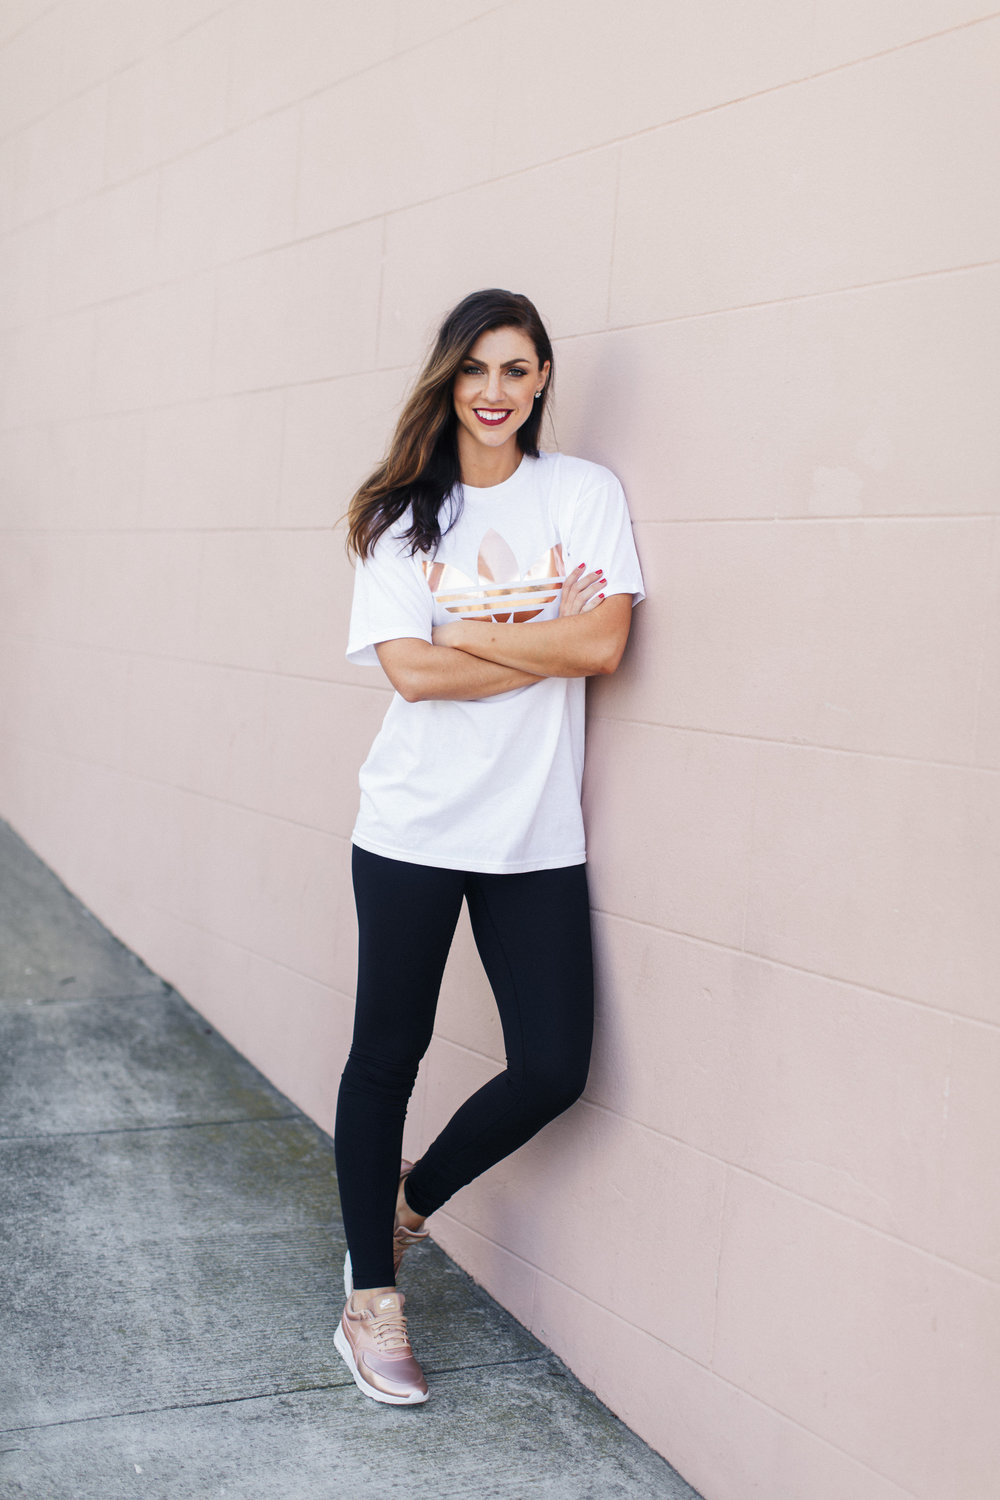 freckles on fillmore the Ultimate Gift Guide for the Fitness Fanatic